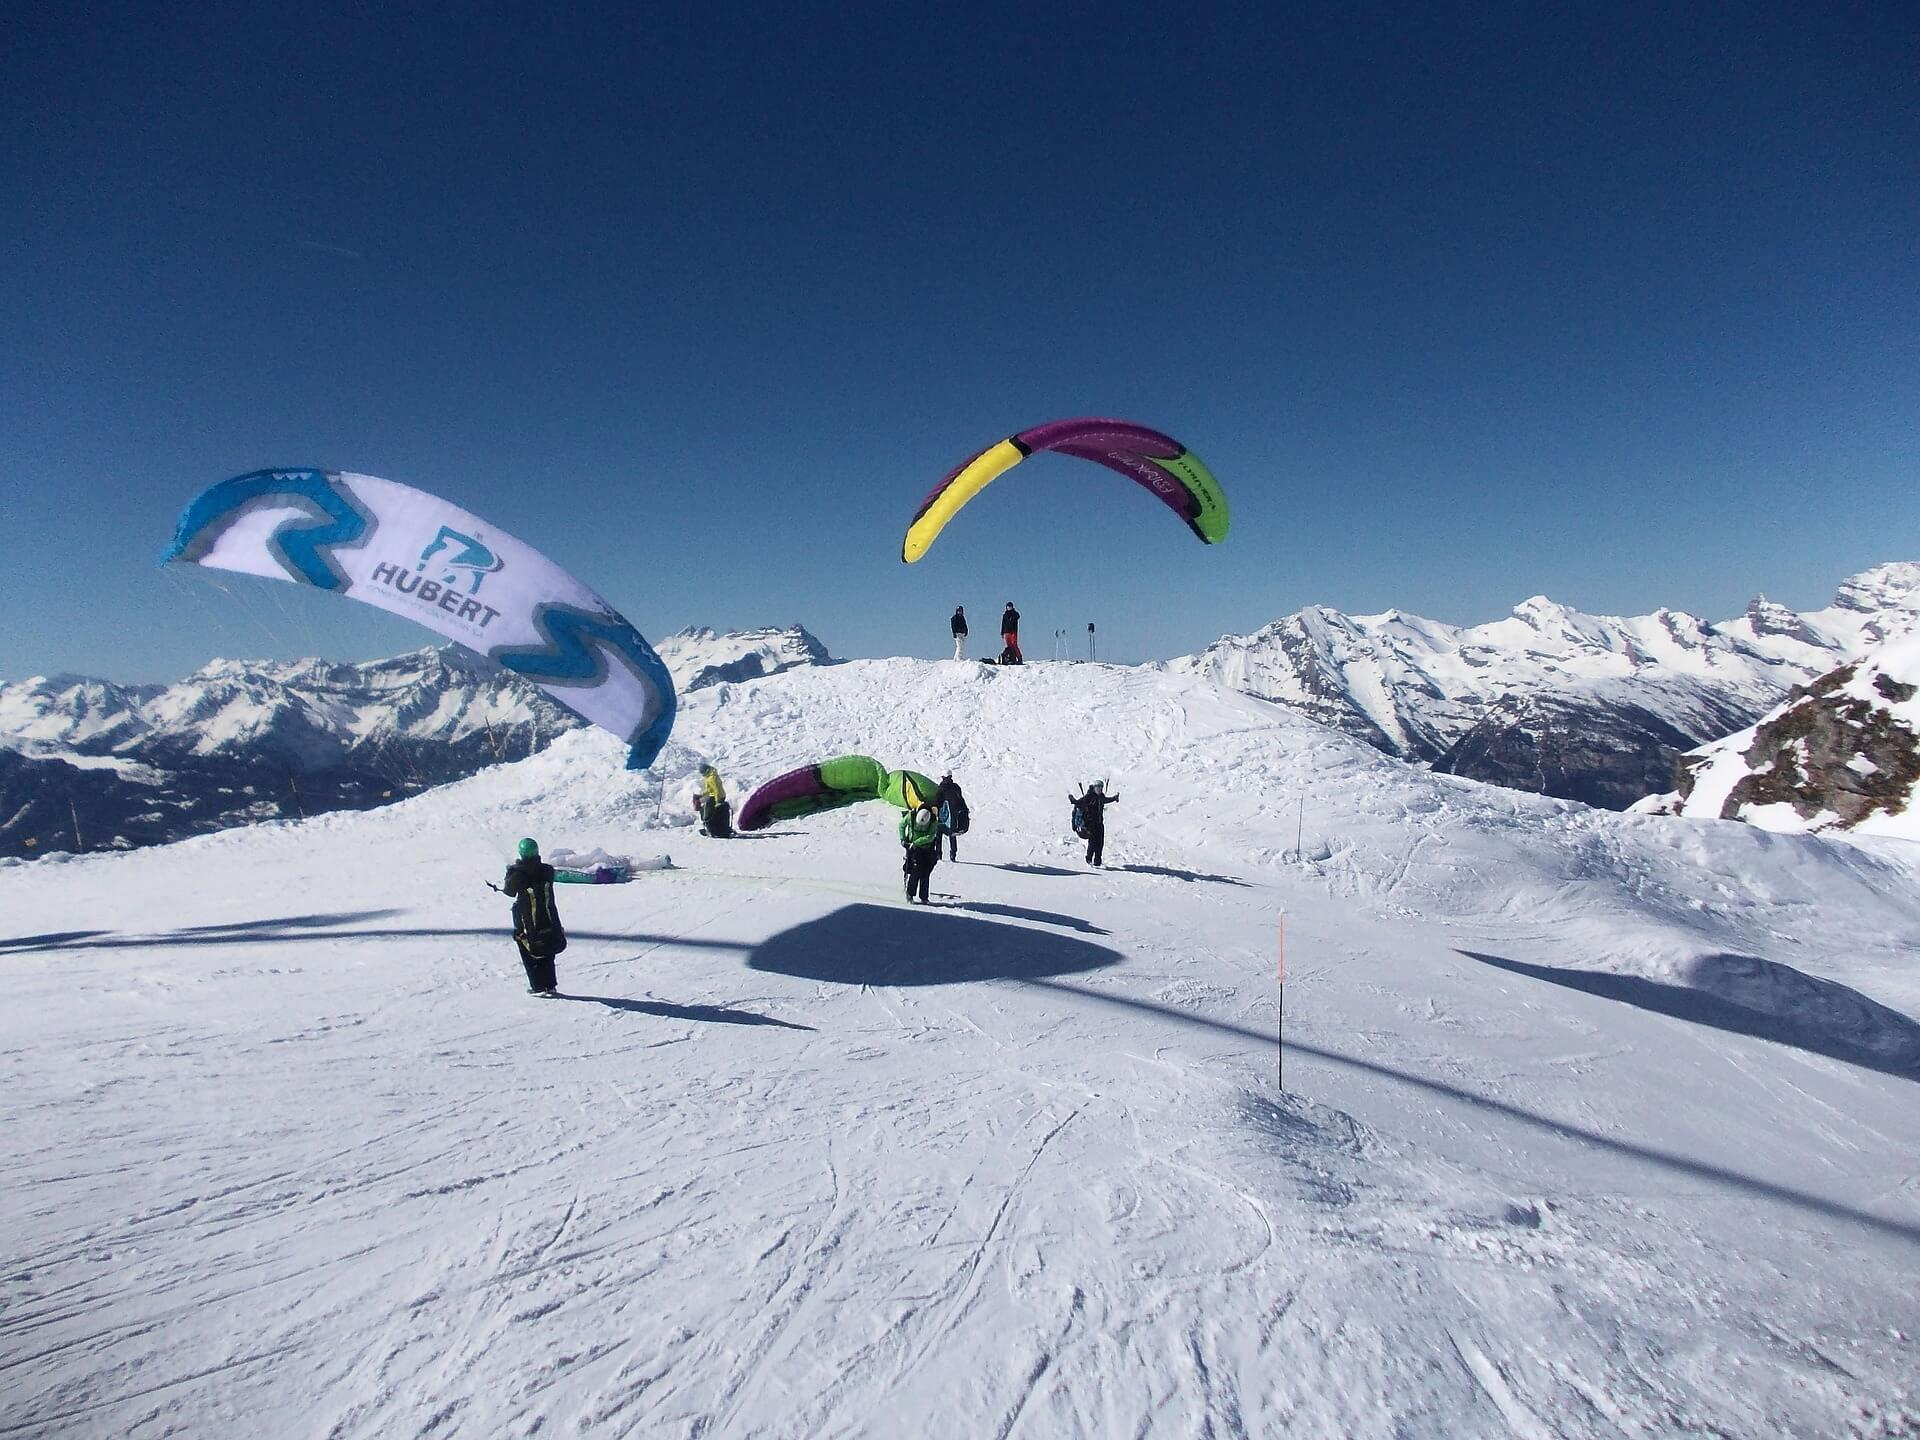 People landing on a snowy mountain after paragliding in switzerland